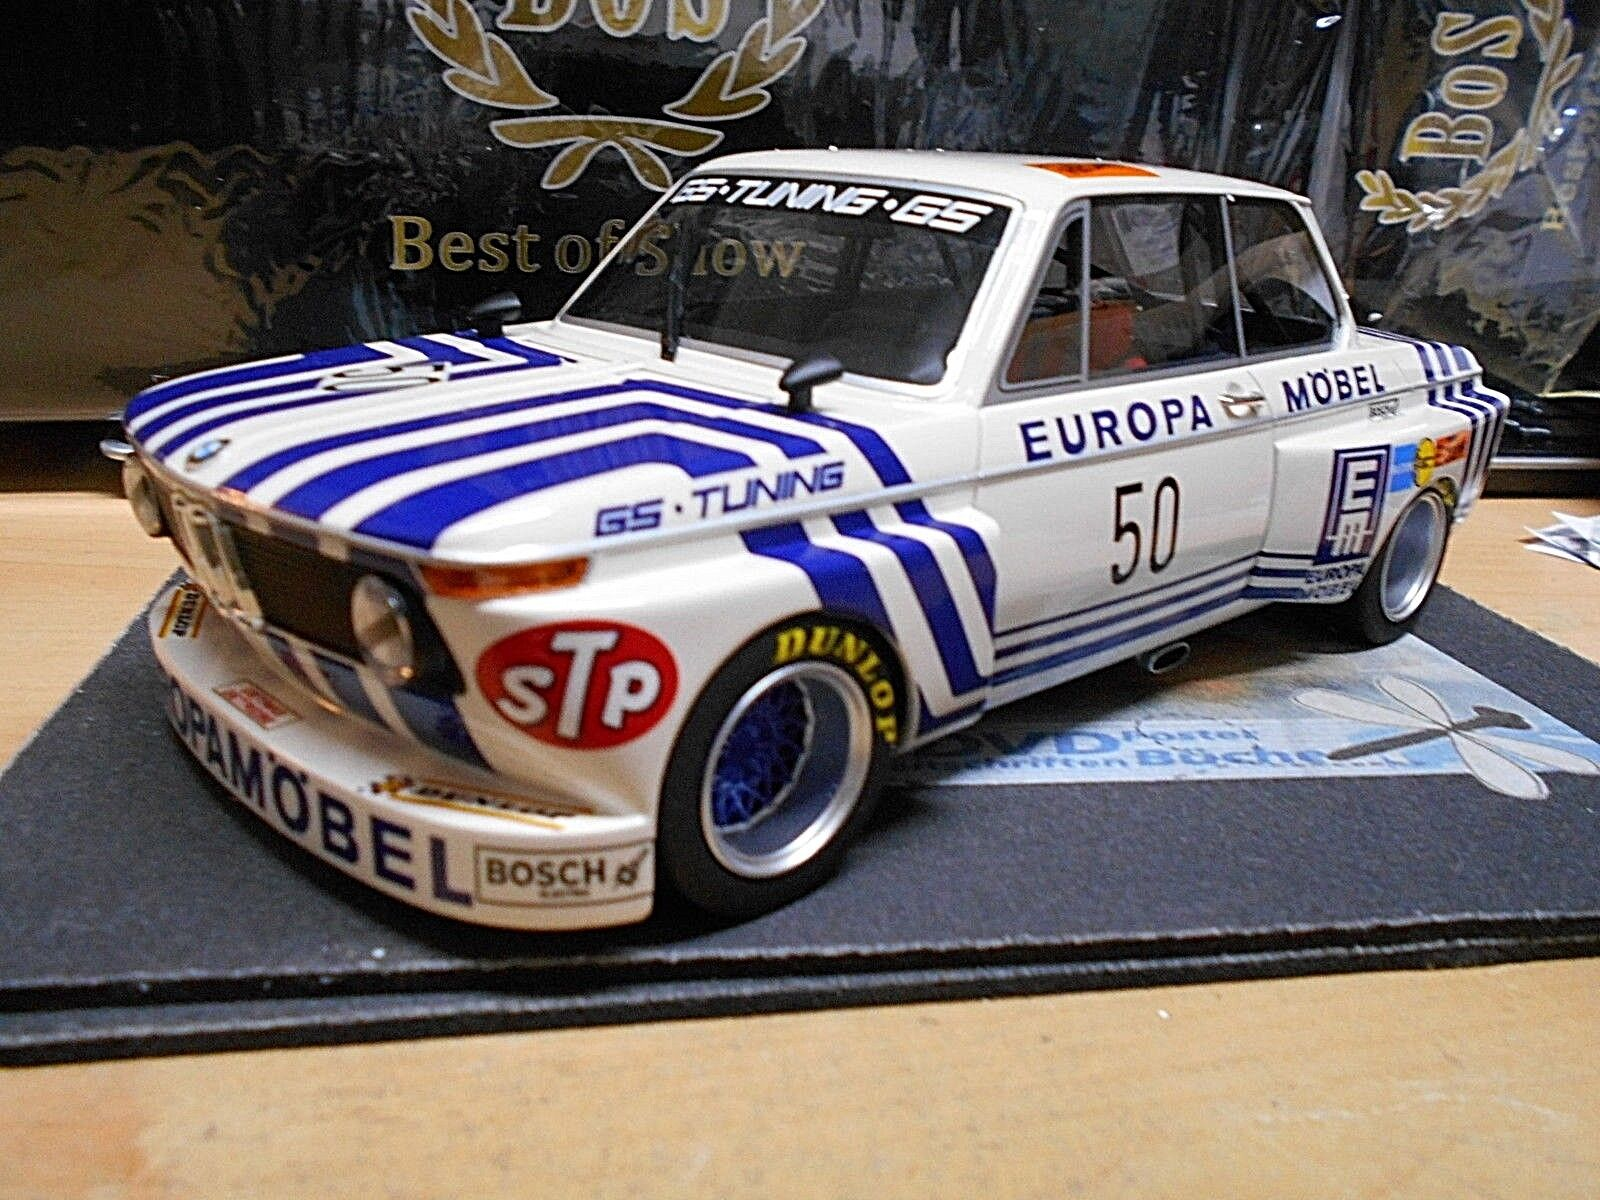 BMW 2002 DRM Euro Möbel Gr.5 GS Tuning Obermoser  50 1974 Resin limitd BOS 1 18